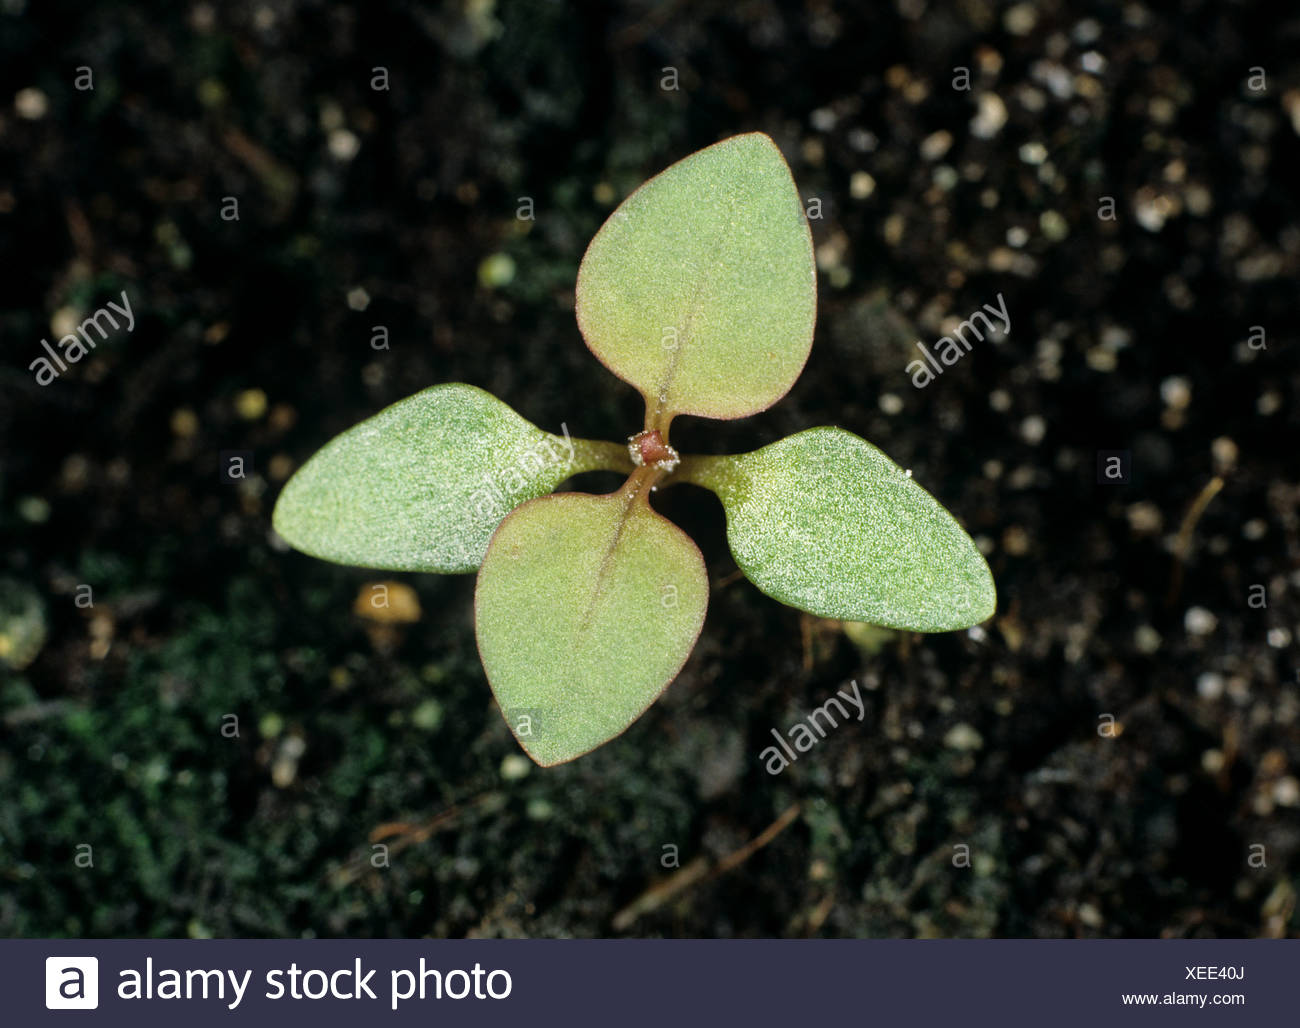 Many-seeded goosefoot (Chenopodium polyspermum) seedling with cotyledons & two true leaves forming - Stock Image